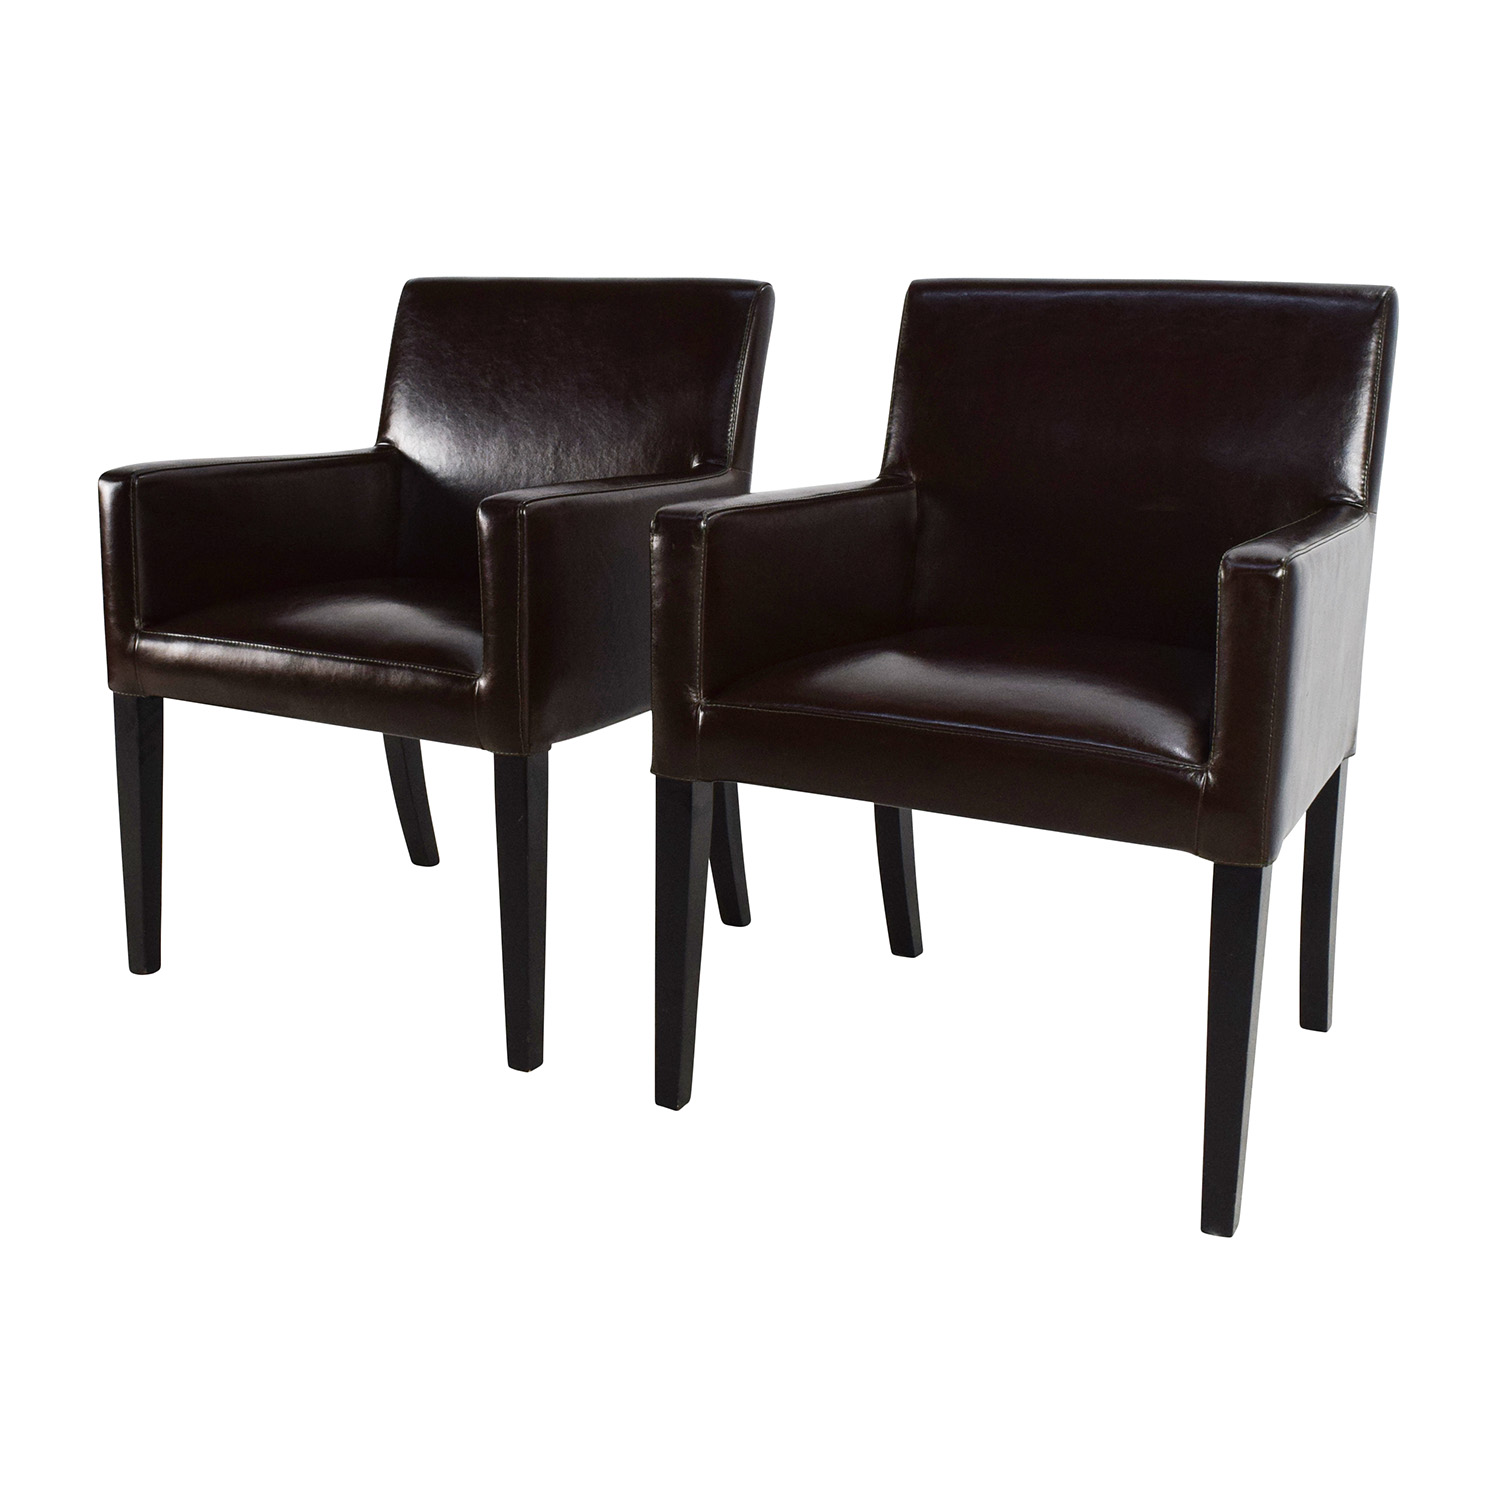 Black Leather Office Chairs dimensions